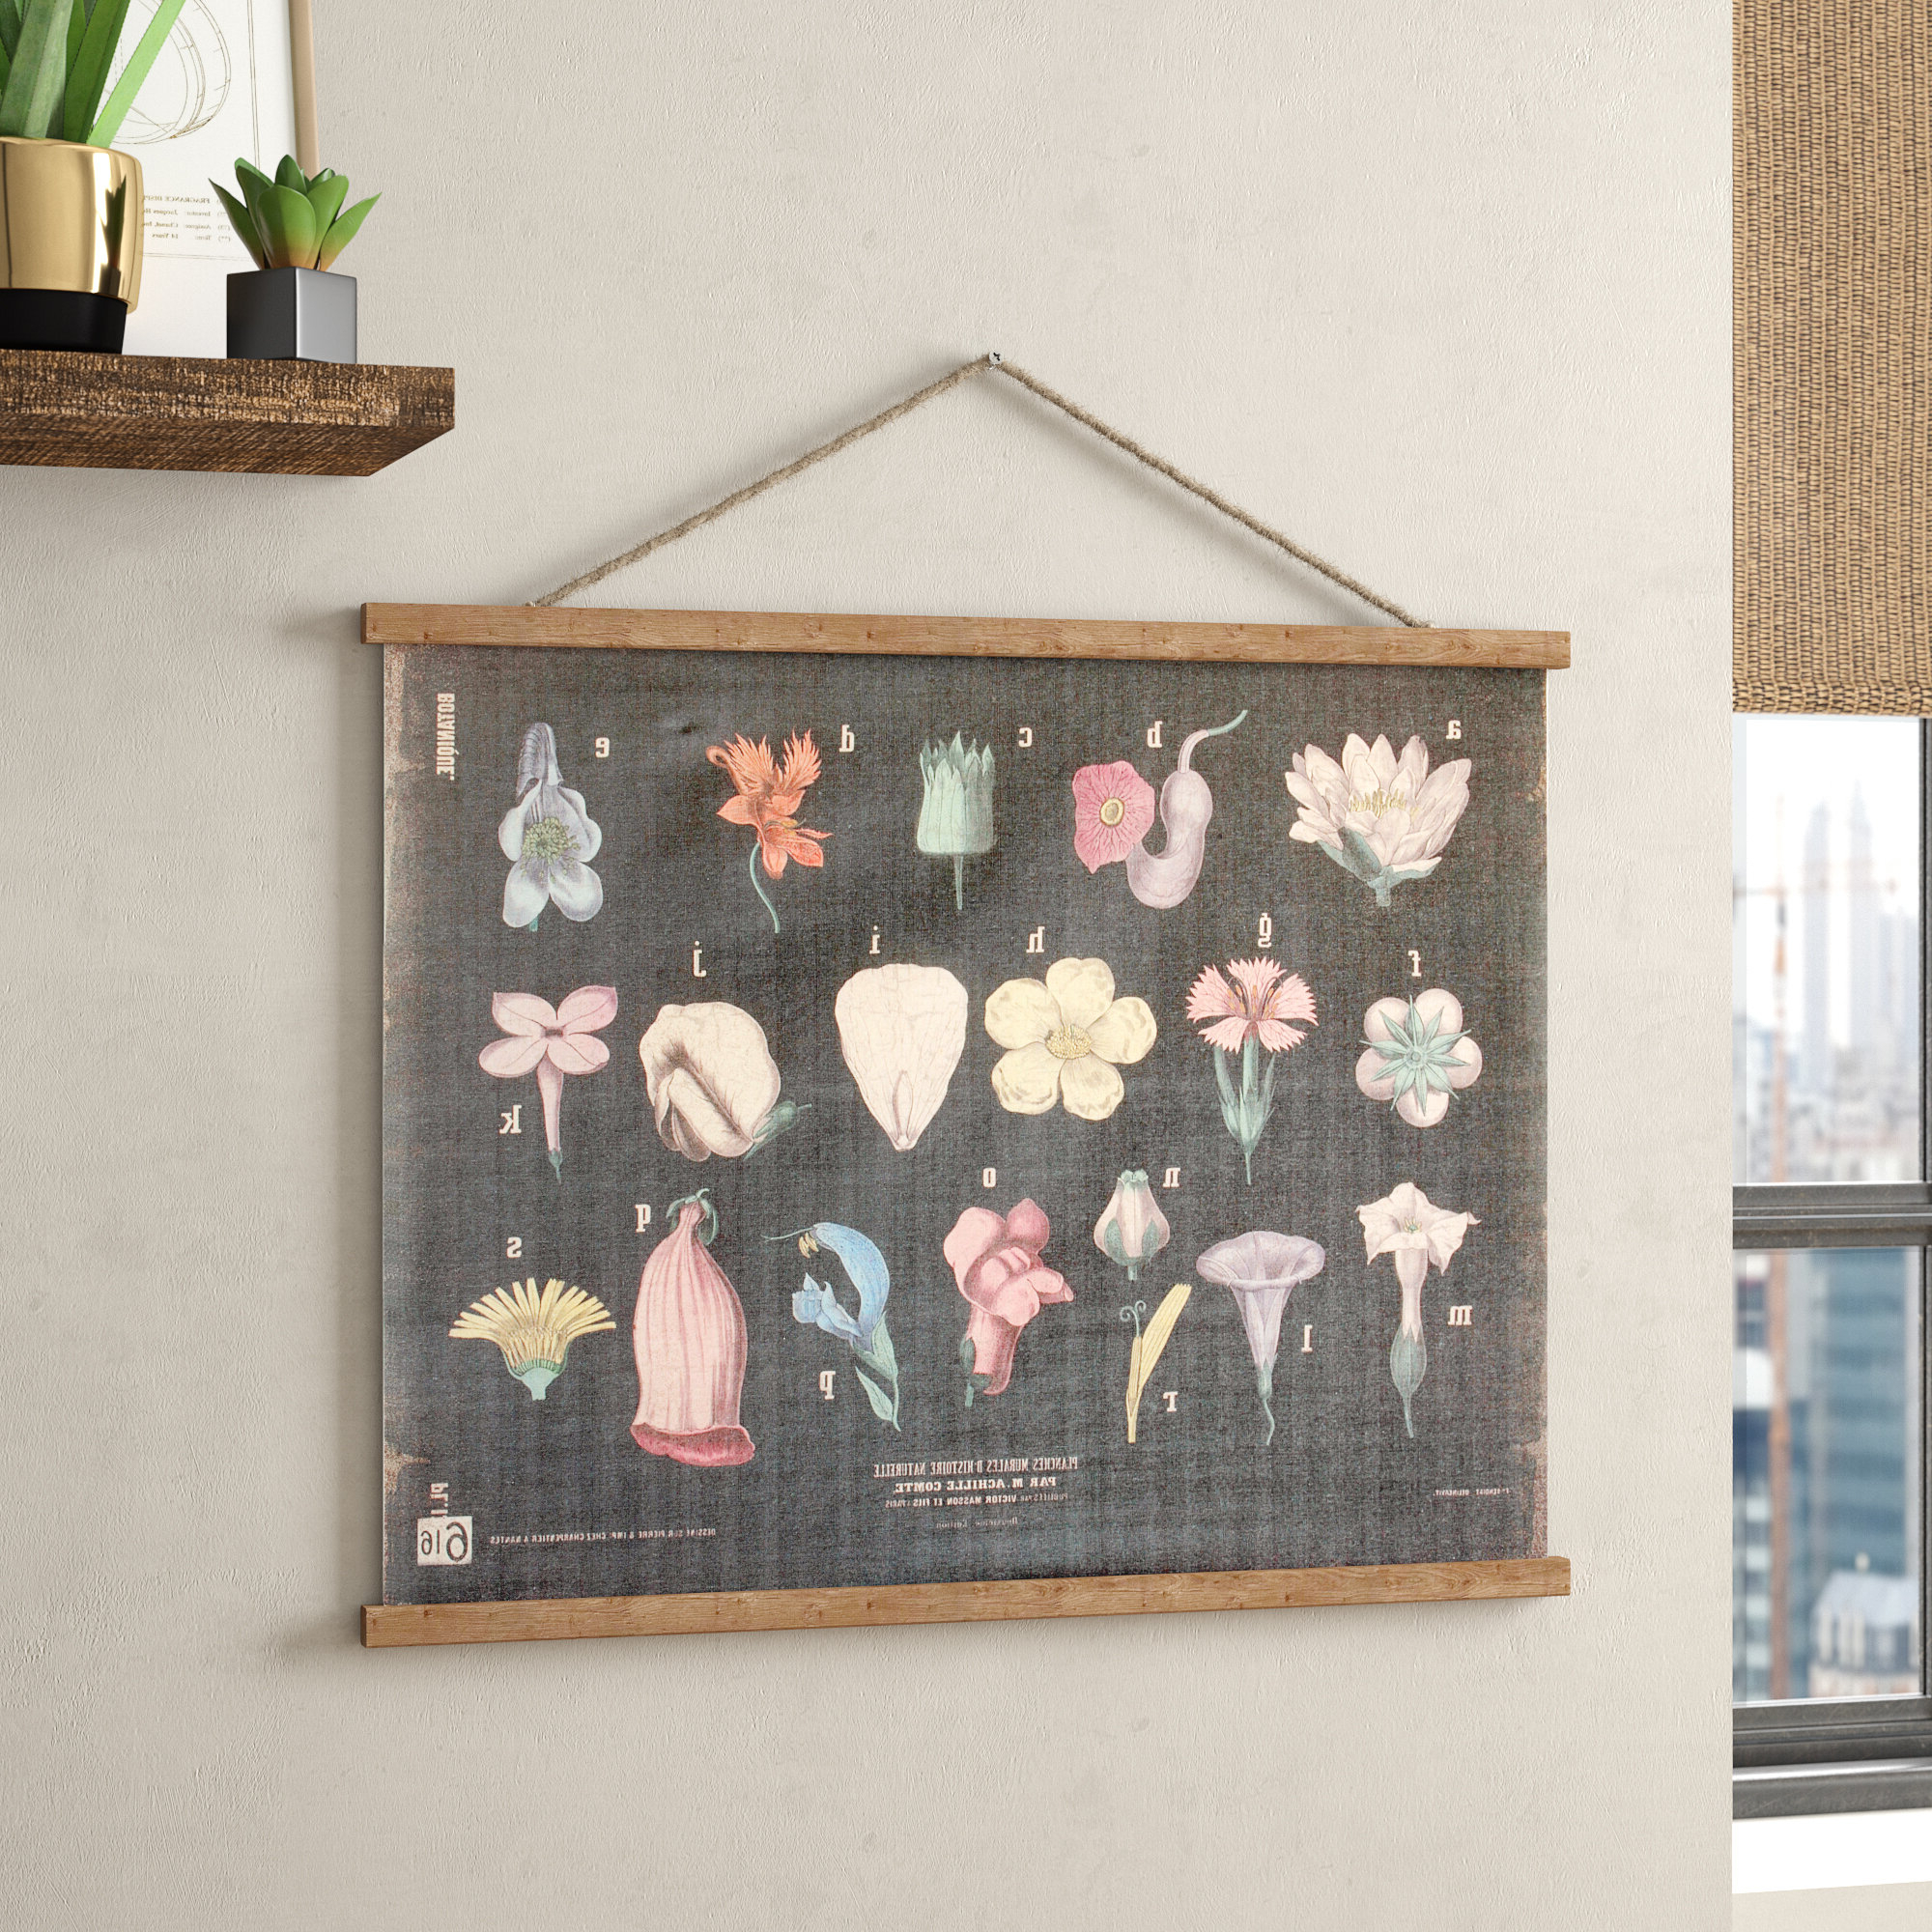 Wall Hanging Tapestries You'll Love In 2021 With Trendy Blended Fabric Ethereal Days Chinoiserie Wall Hangings With Rod (View 20 of 20)